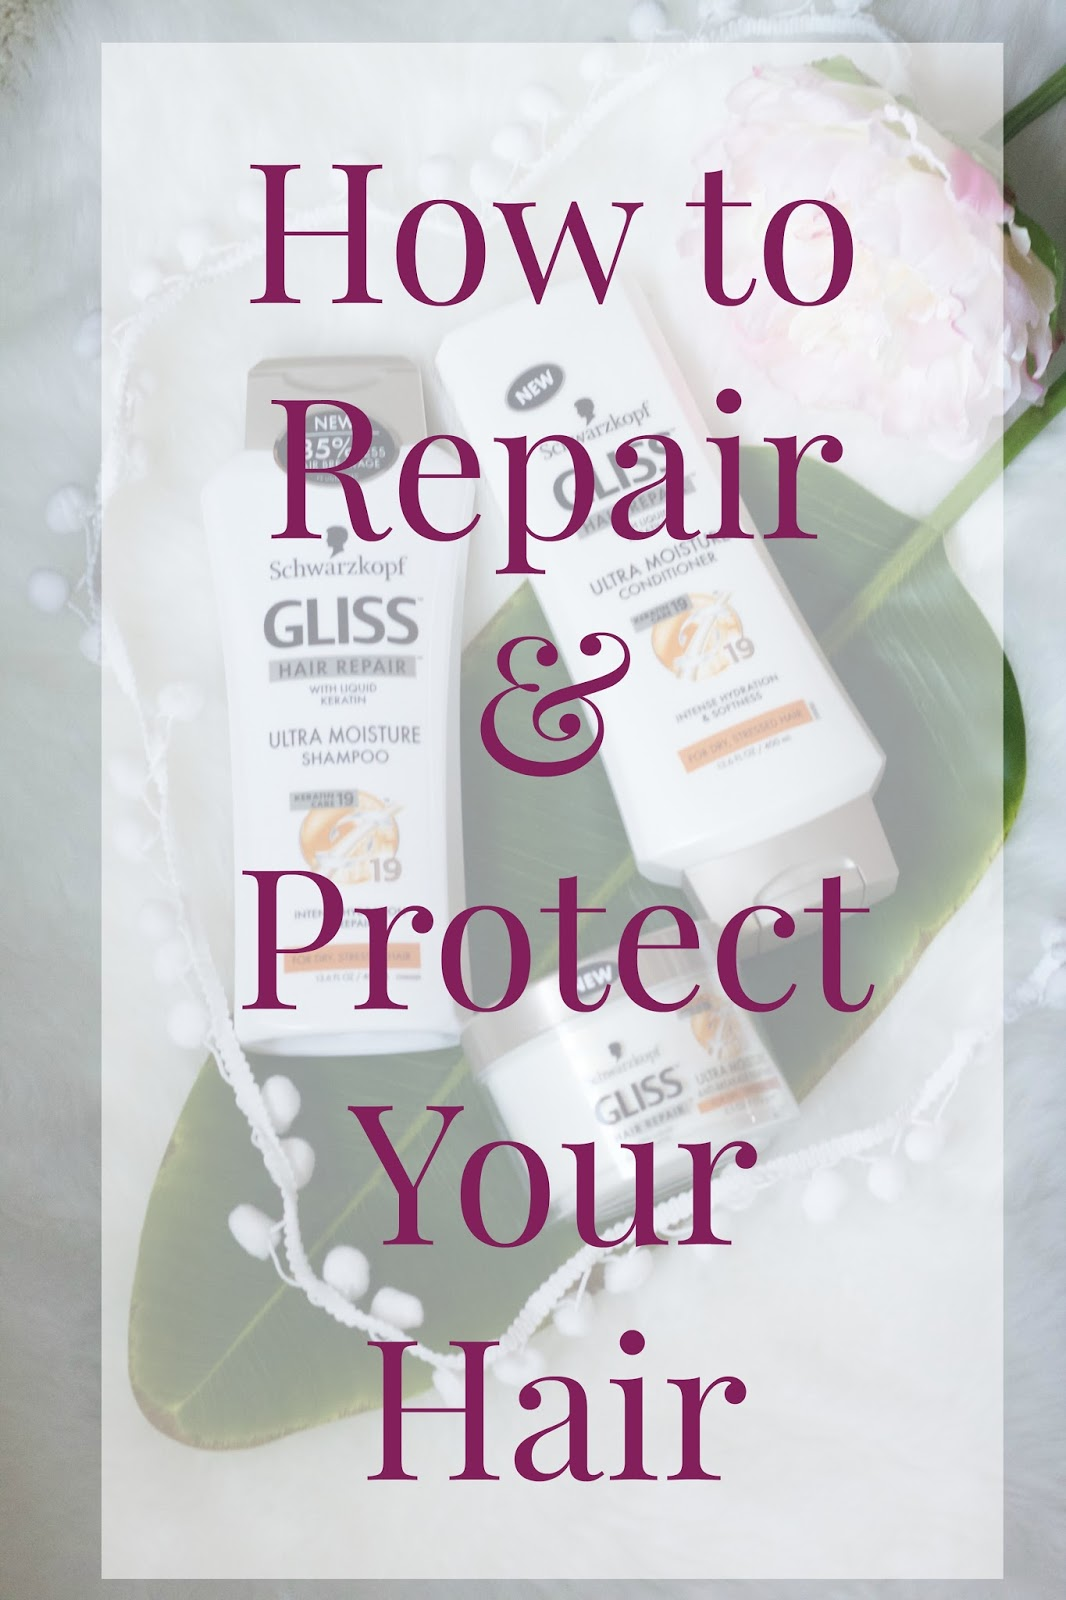 How to Repair & Protect Your Hair